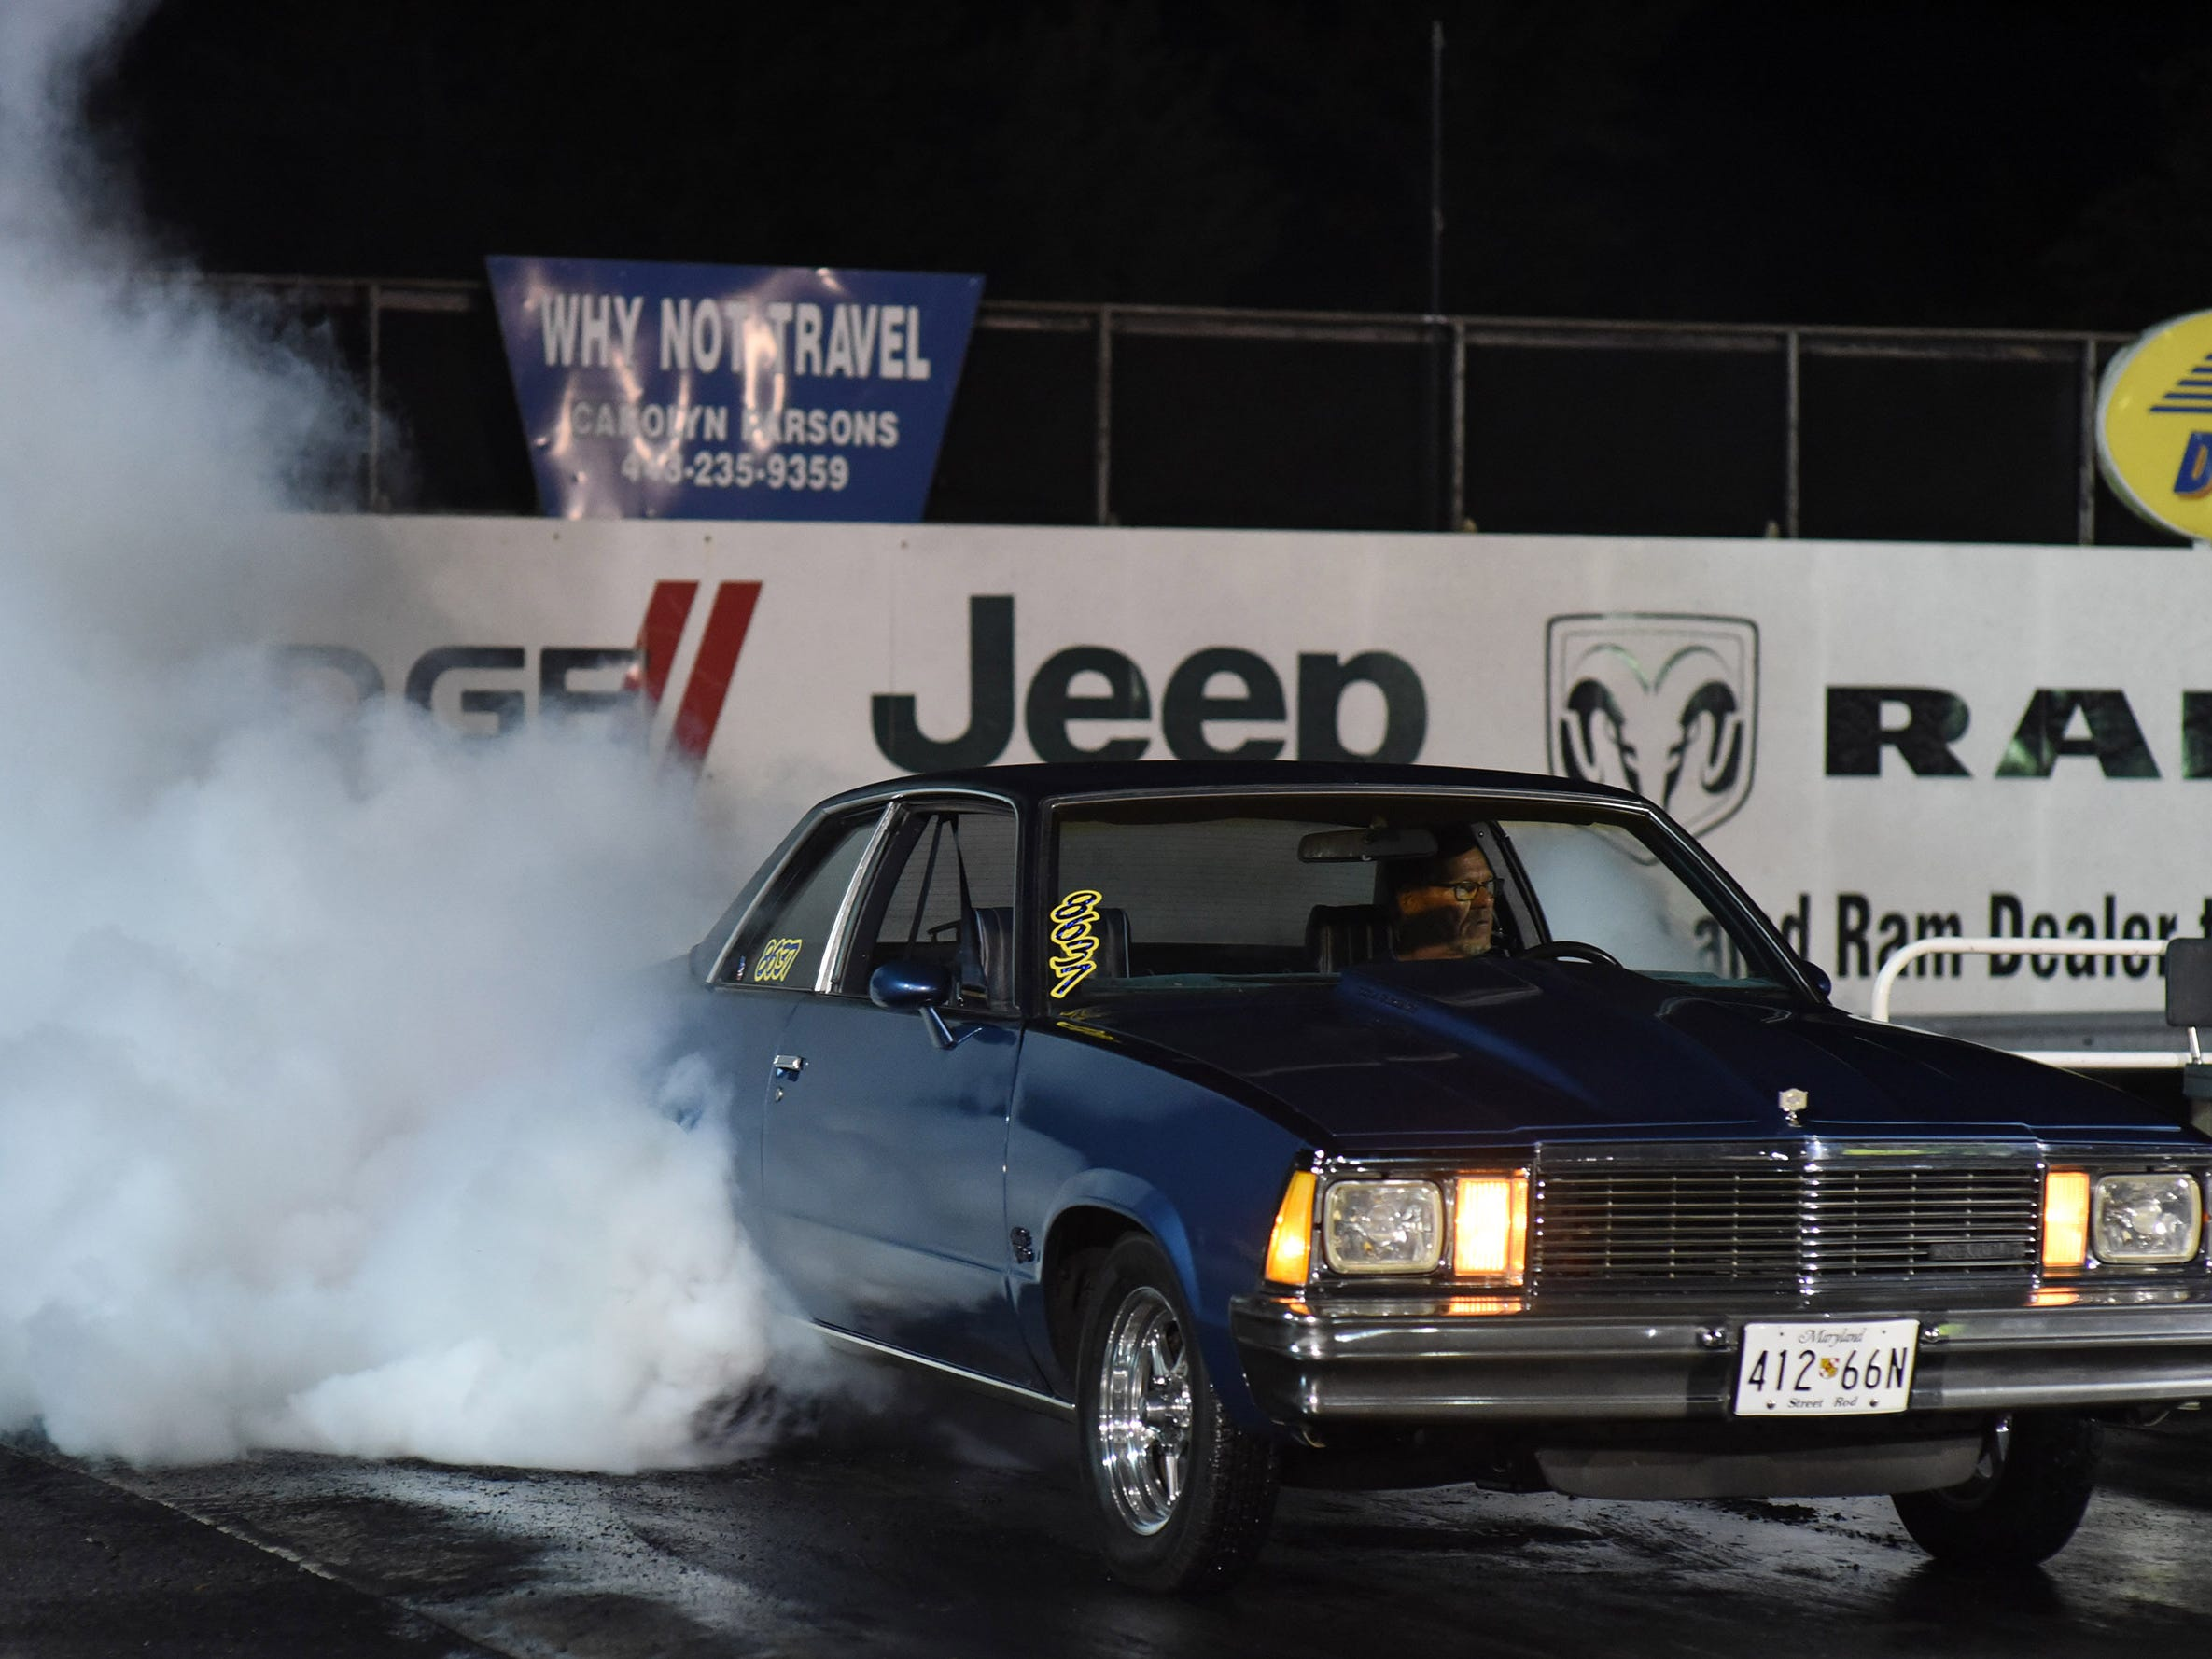 Billy Collingsworth competes in the first Endless Summer Cruisin' 2018 Burnout Contest at the U.S. 13 Dragway in Delmar. Billy McLamb of Mardela Springs was the winner of the contest and $500 sponsored by Special Event Productions Inc. (Photo by Todd Dudek for The Daily Times)